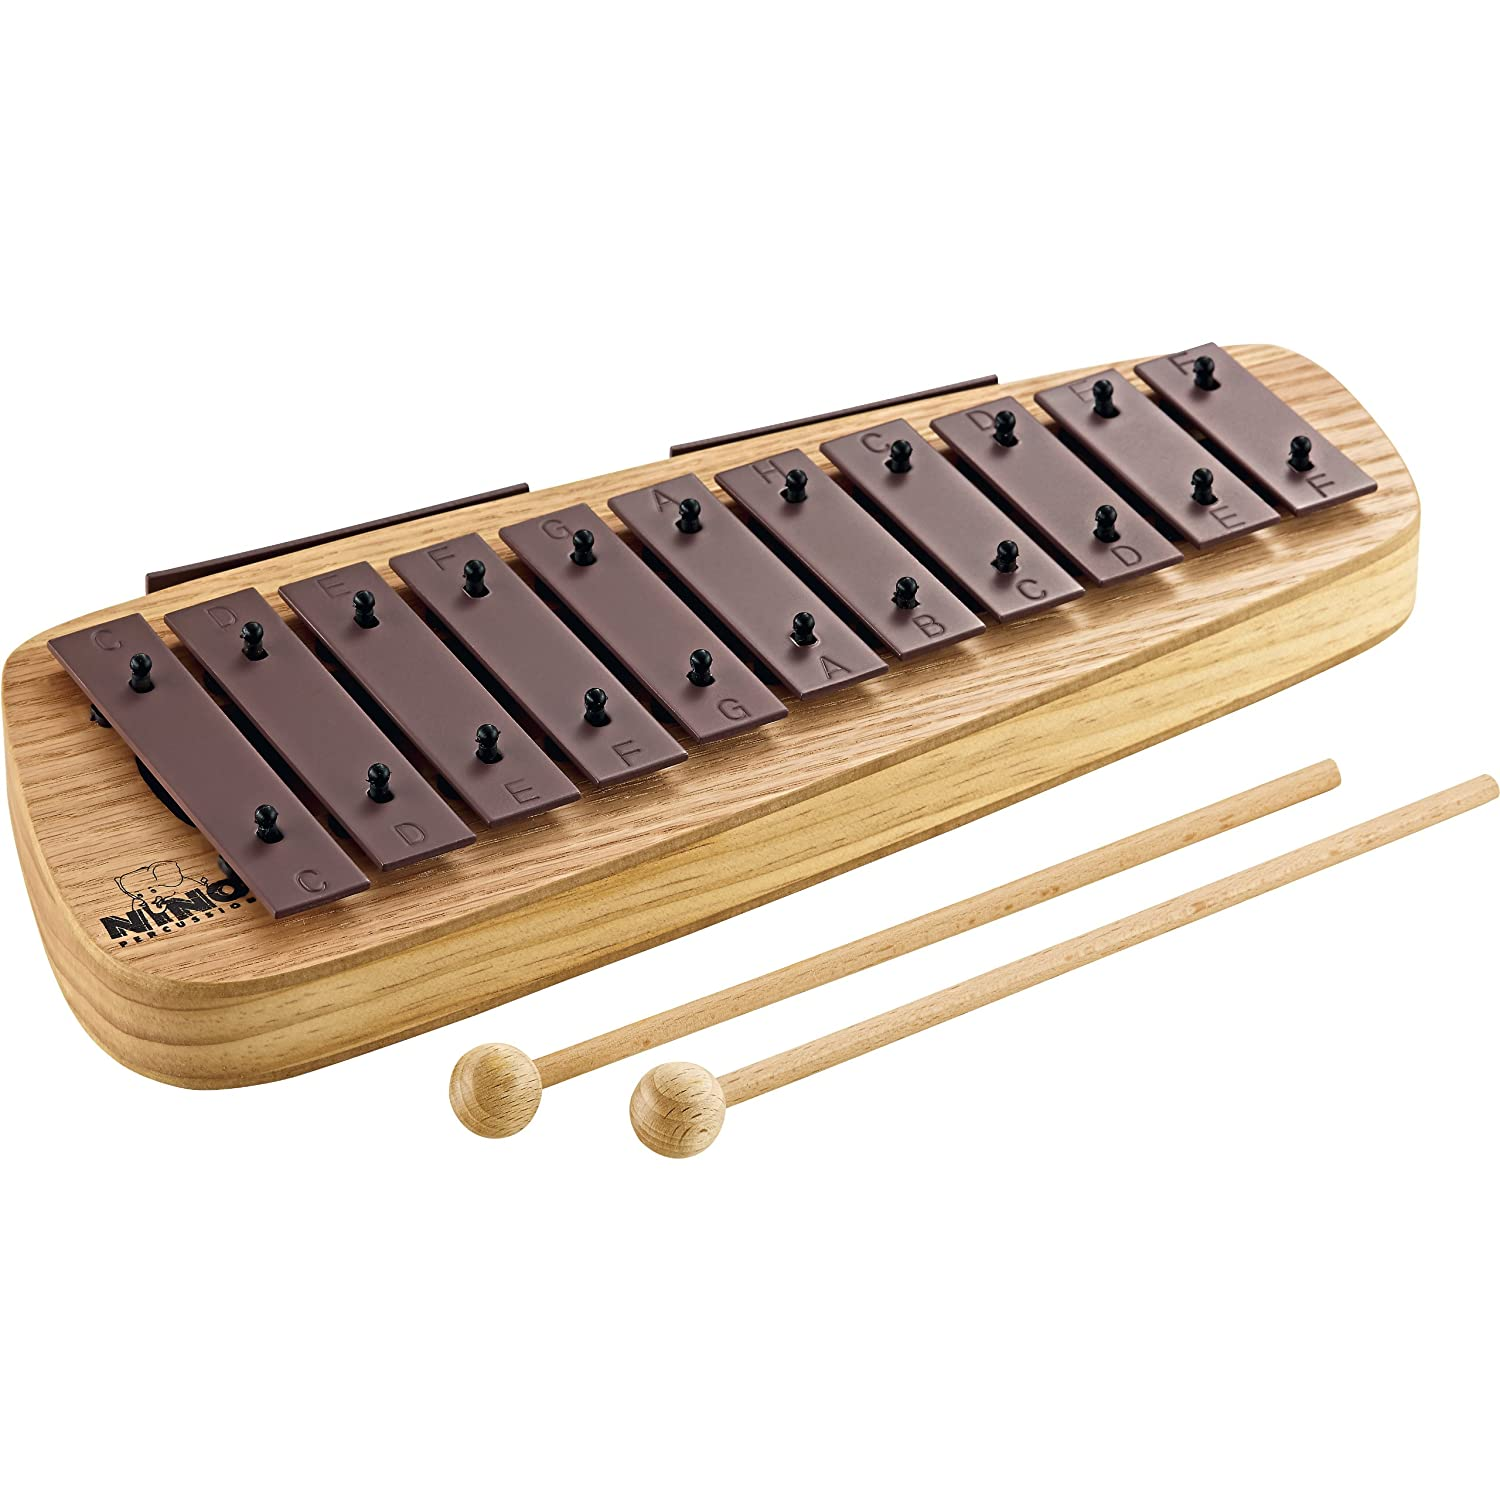 Nino Percussion NINO902 C Major Scale Glockenspiel with Steel Keys Meinl USA L.C.